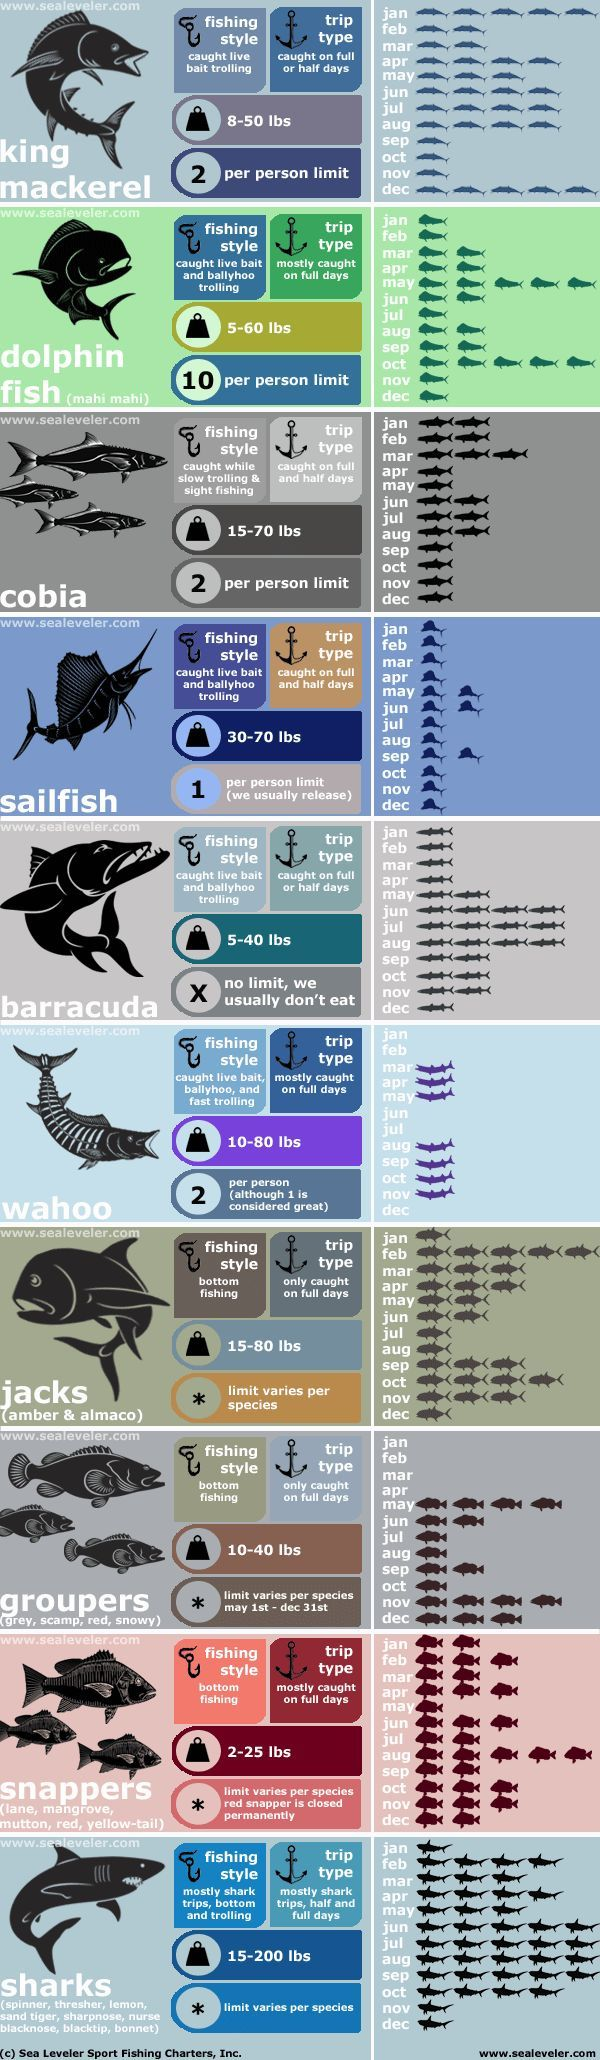 Sea leveler sport fishing charters infographic fish caught by month and type of charter trip